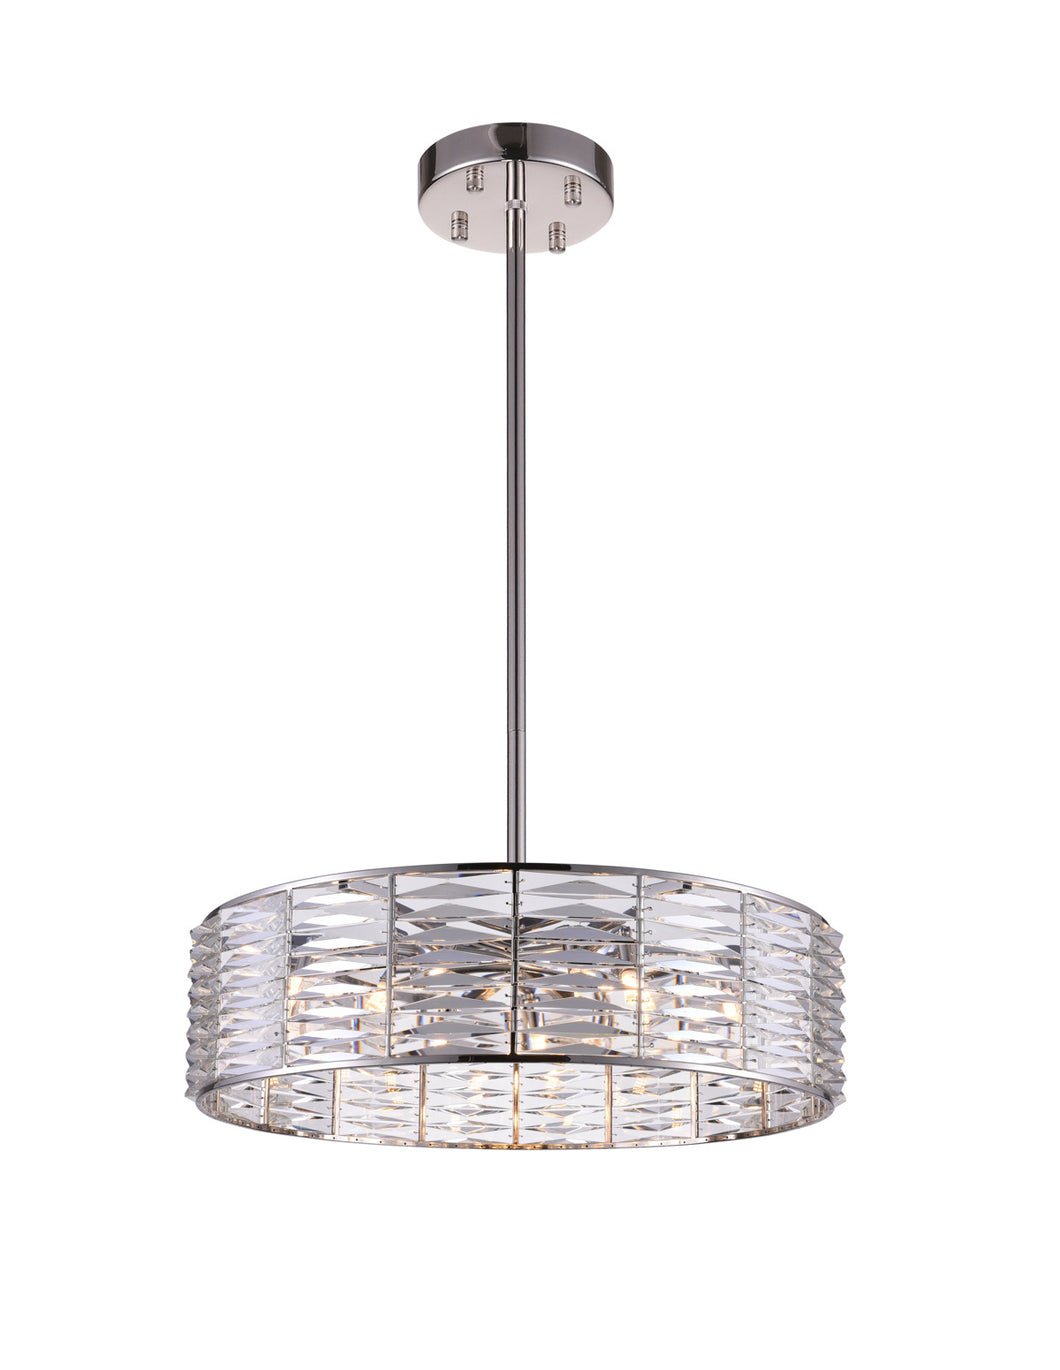 12 Light Down Chandelier with Bright Nickel finish